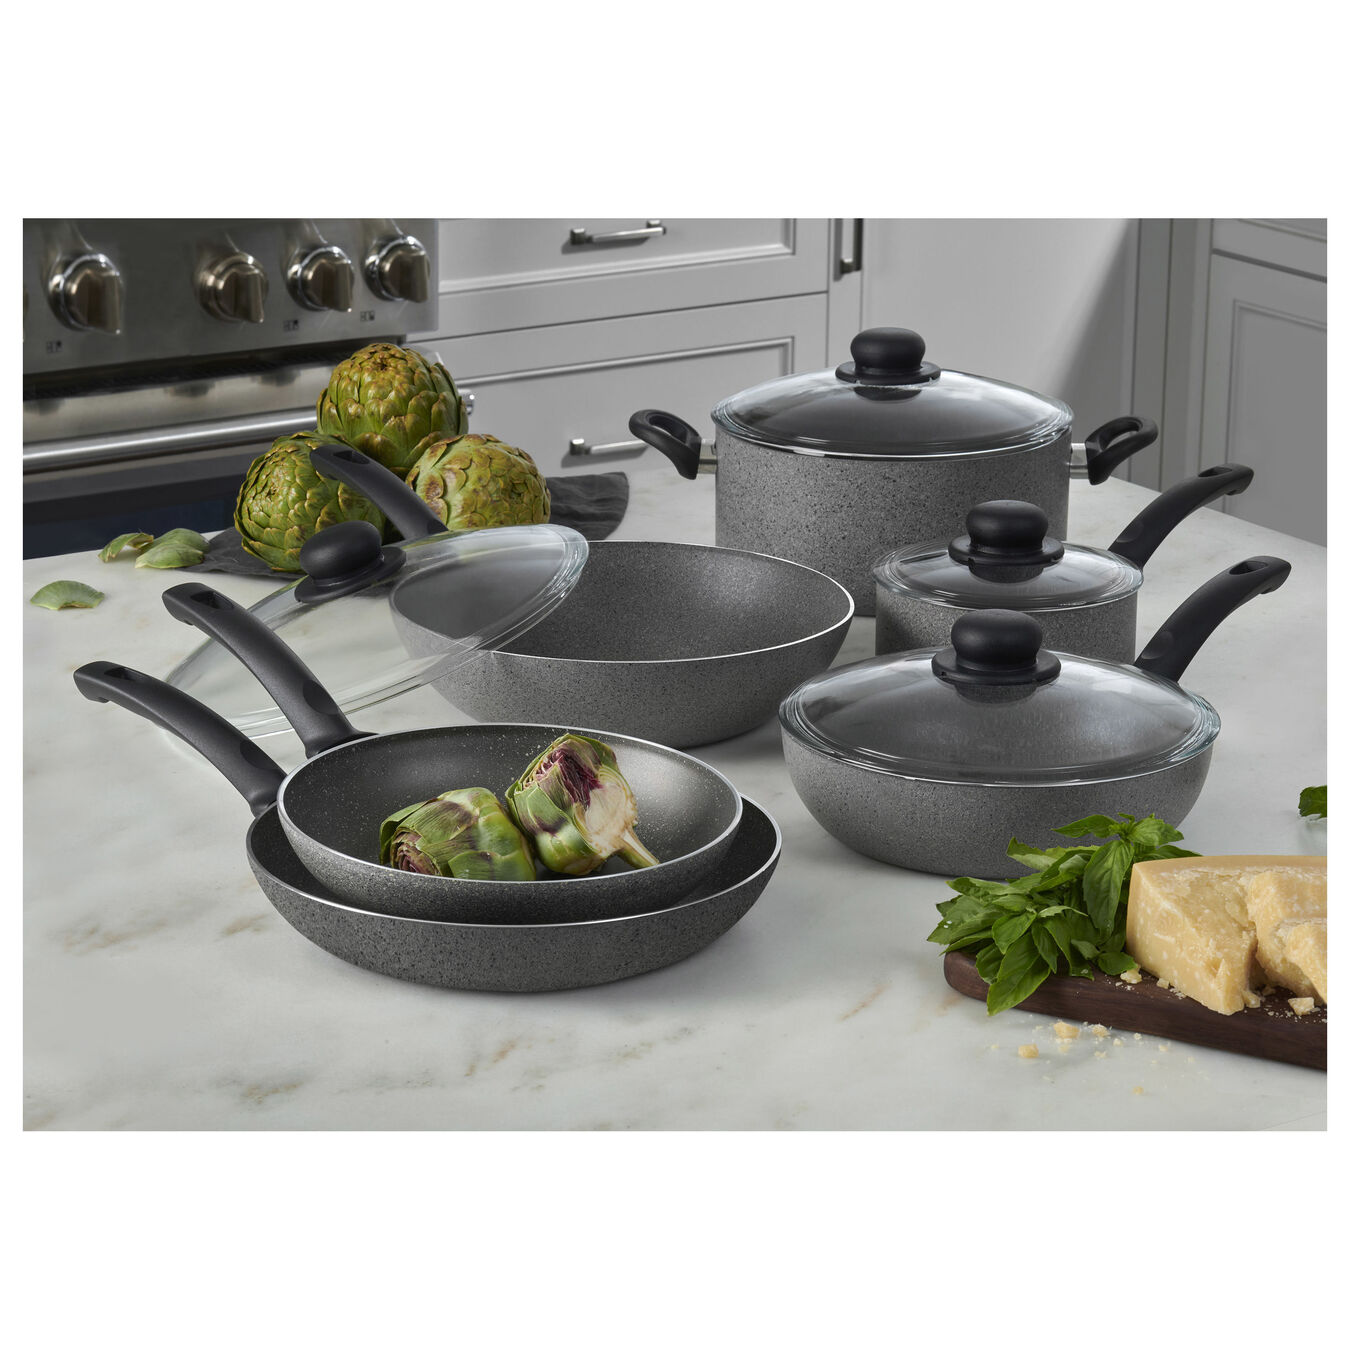 10-pc Nonstick Cookware Set,,large 8